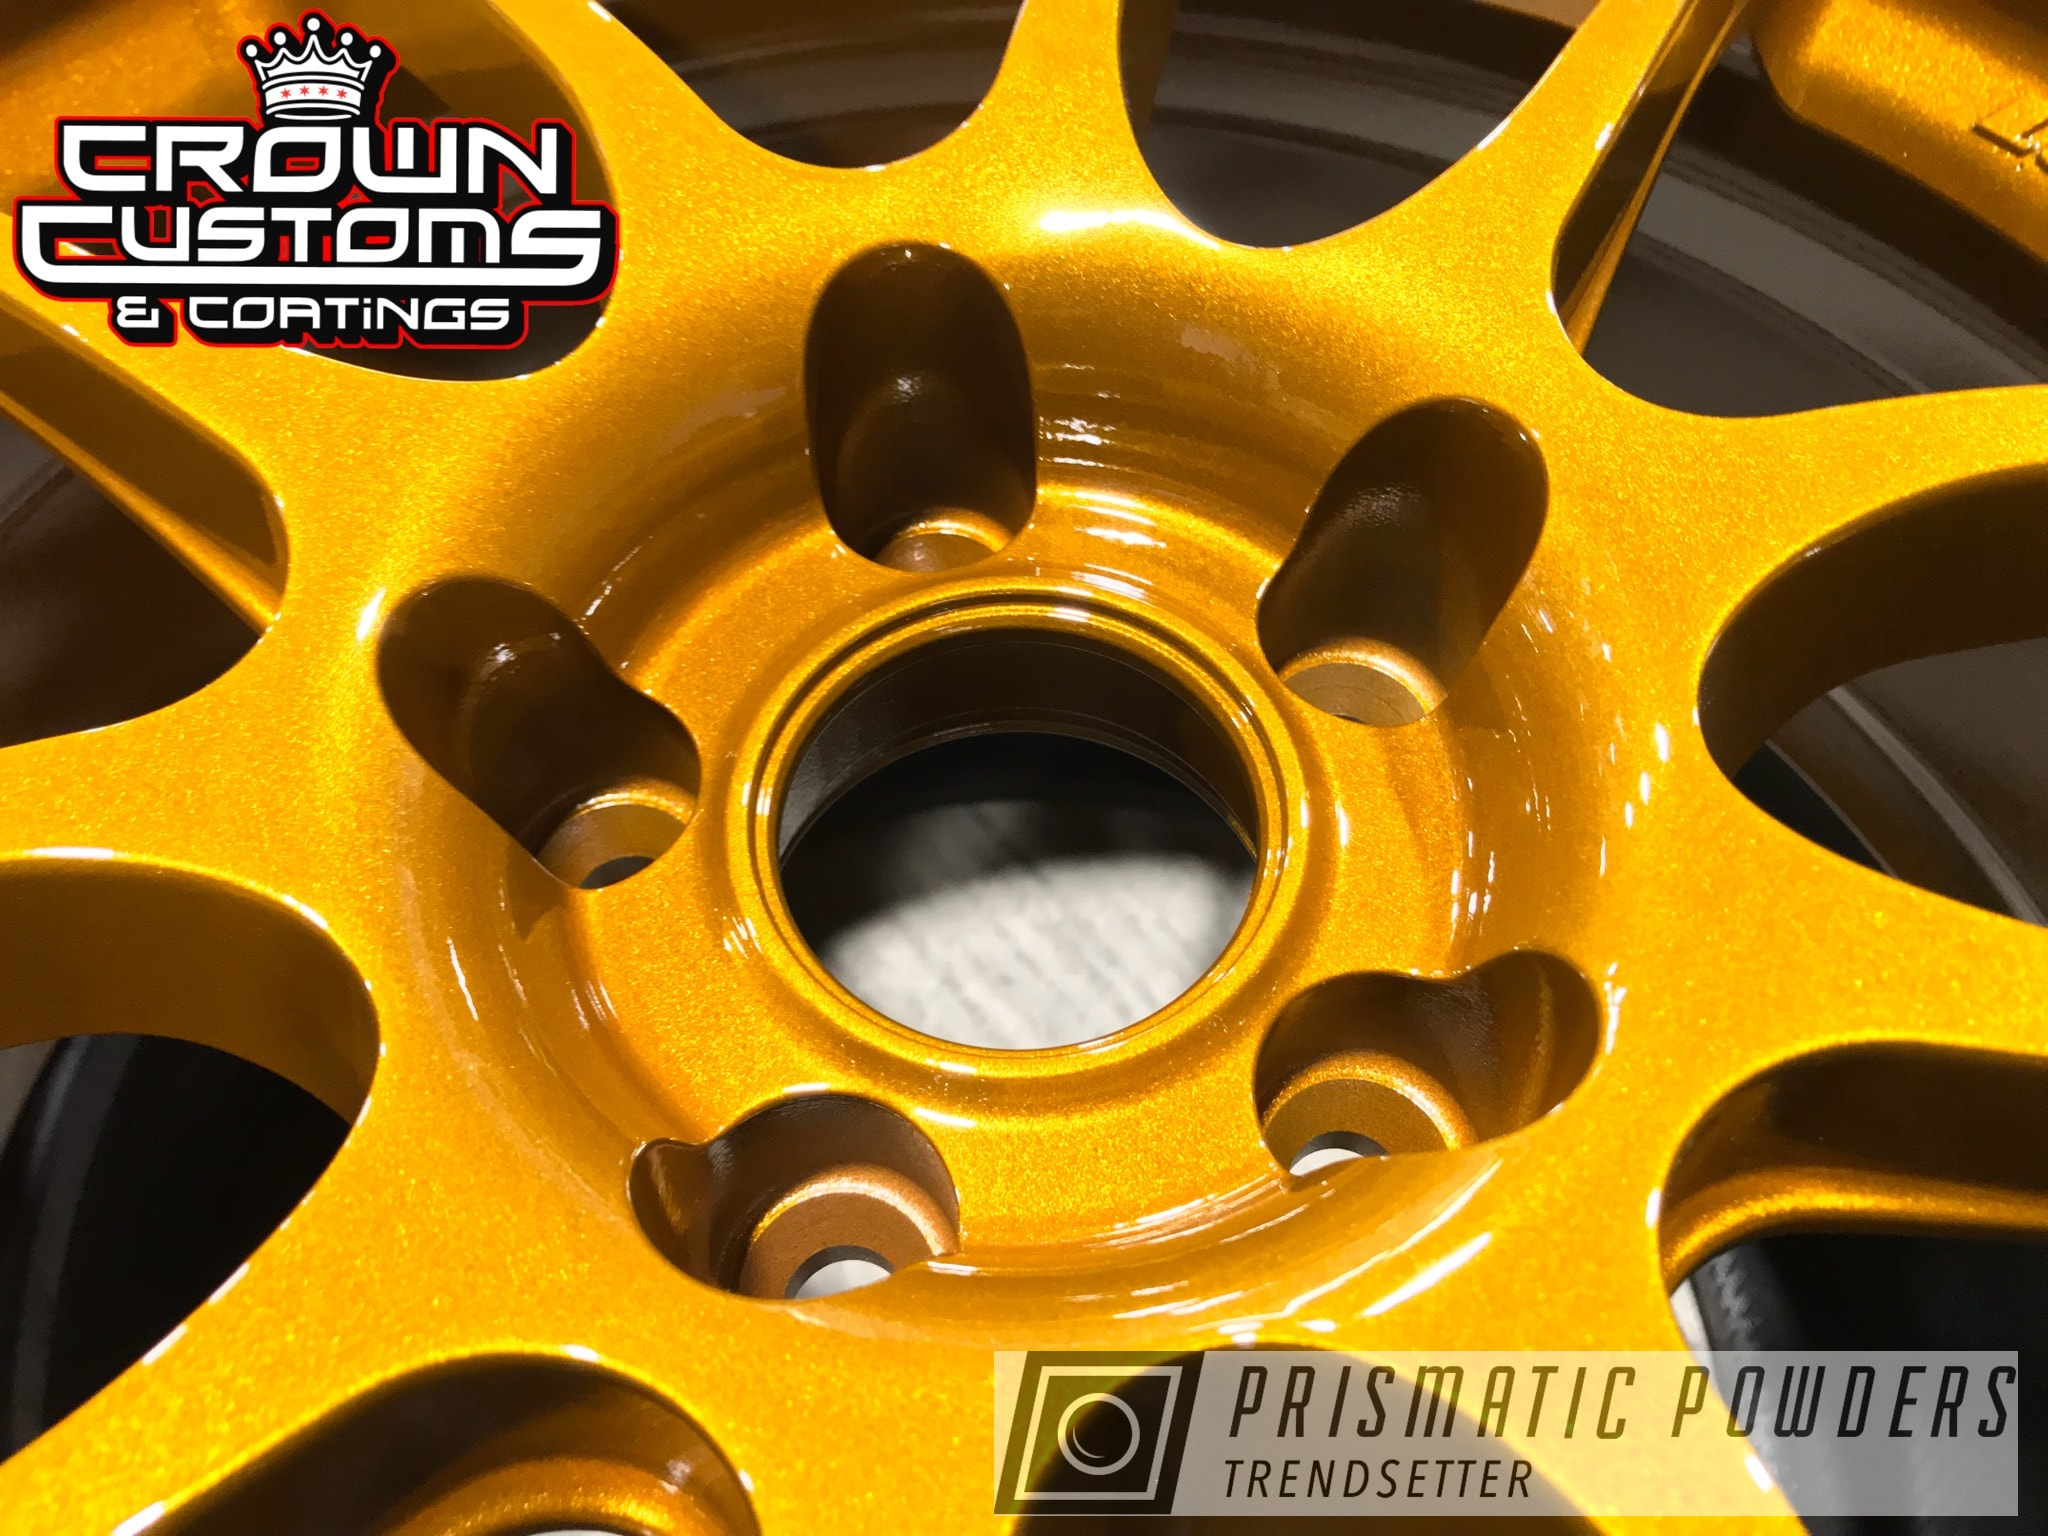 Powder Coating: Wheels,Enkei Wheels,Clear Vision PPS-2974,Illusion Spanish Fly PMB-6920,enkei pf01